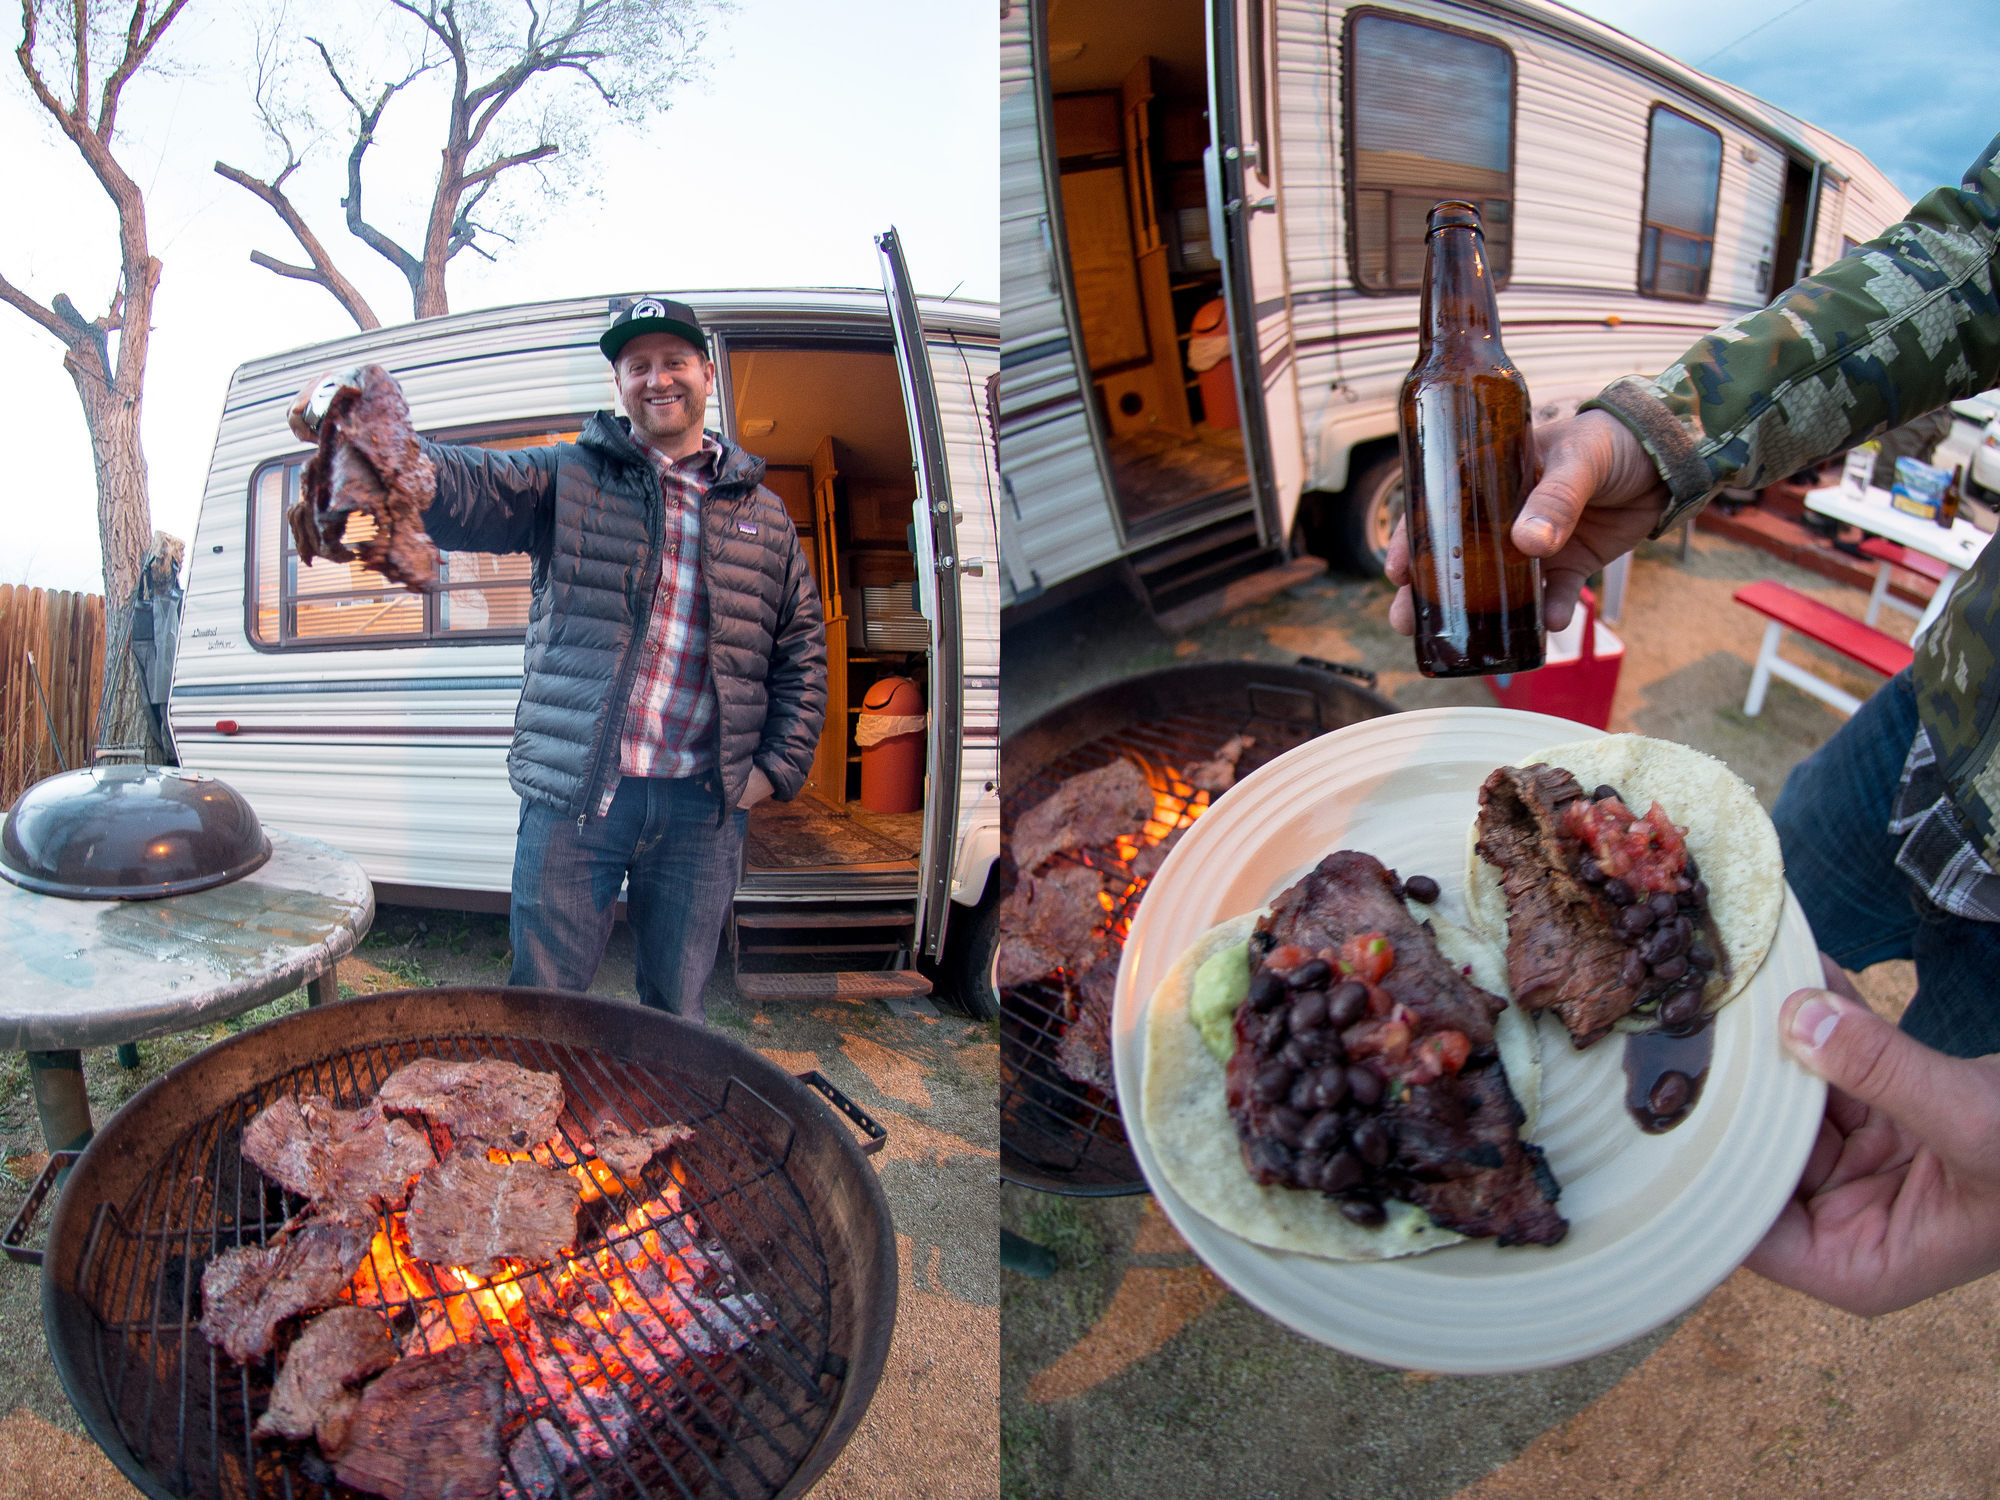 Kyle Graf brought carne asada for tacos the first night. We made short work of those because we are men and as men we are obliged to consume massive amounts of meat product. Luckily for us the next night, Weston, in a supreme display of manliness, brought marinated elk steaks from an animal he shot himself. Proper.